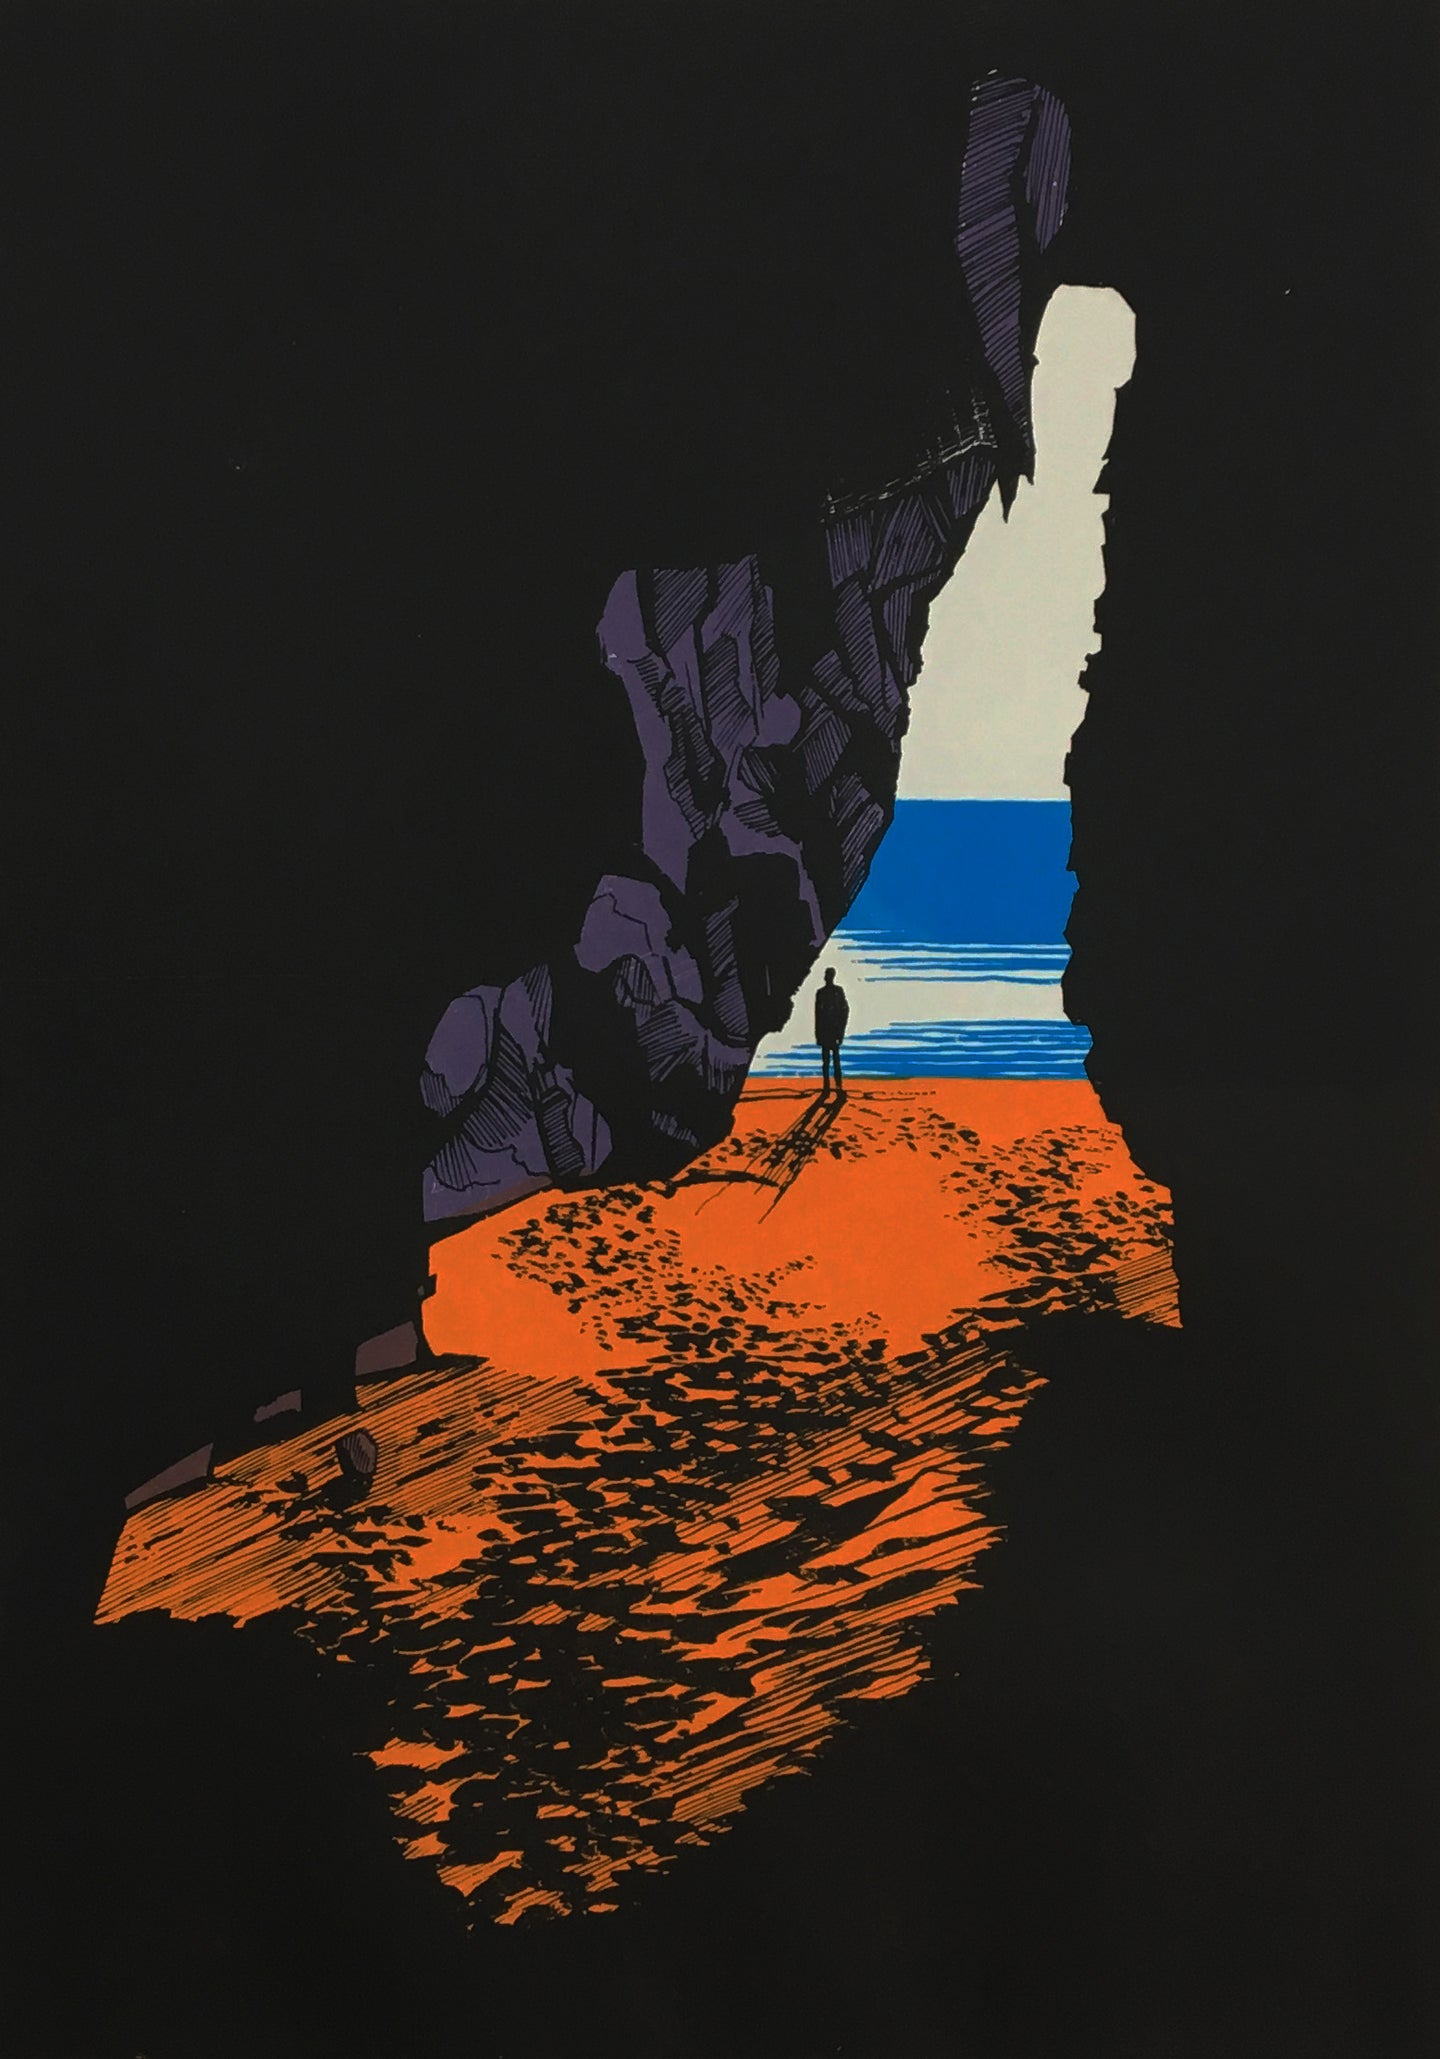 Dragon Cave - limited edition screen print by James Bywood